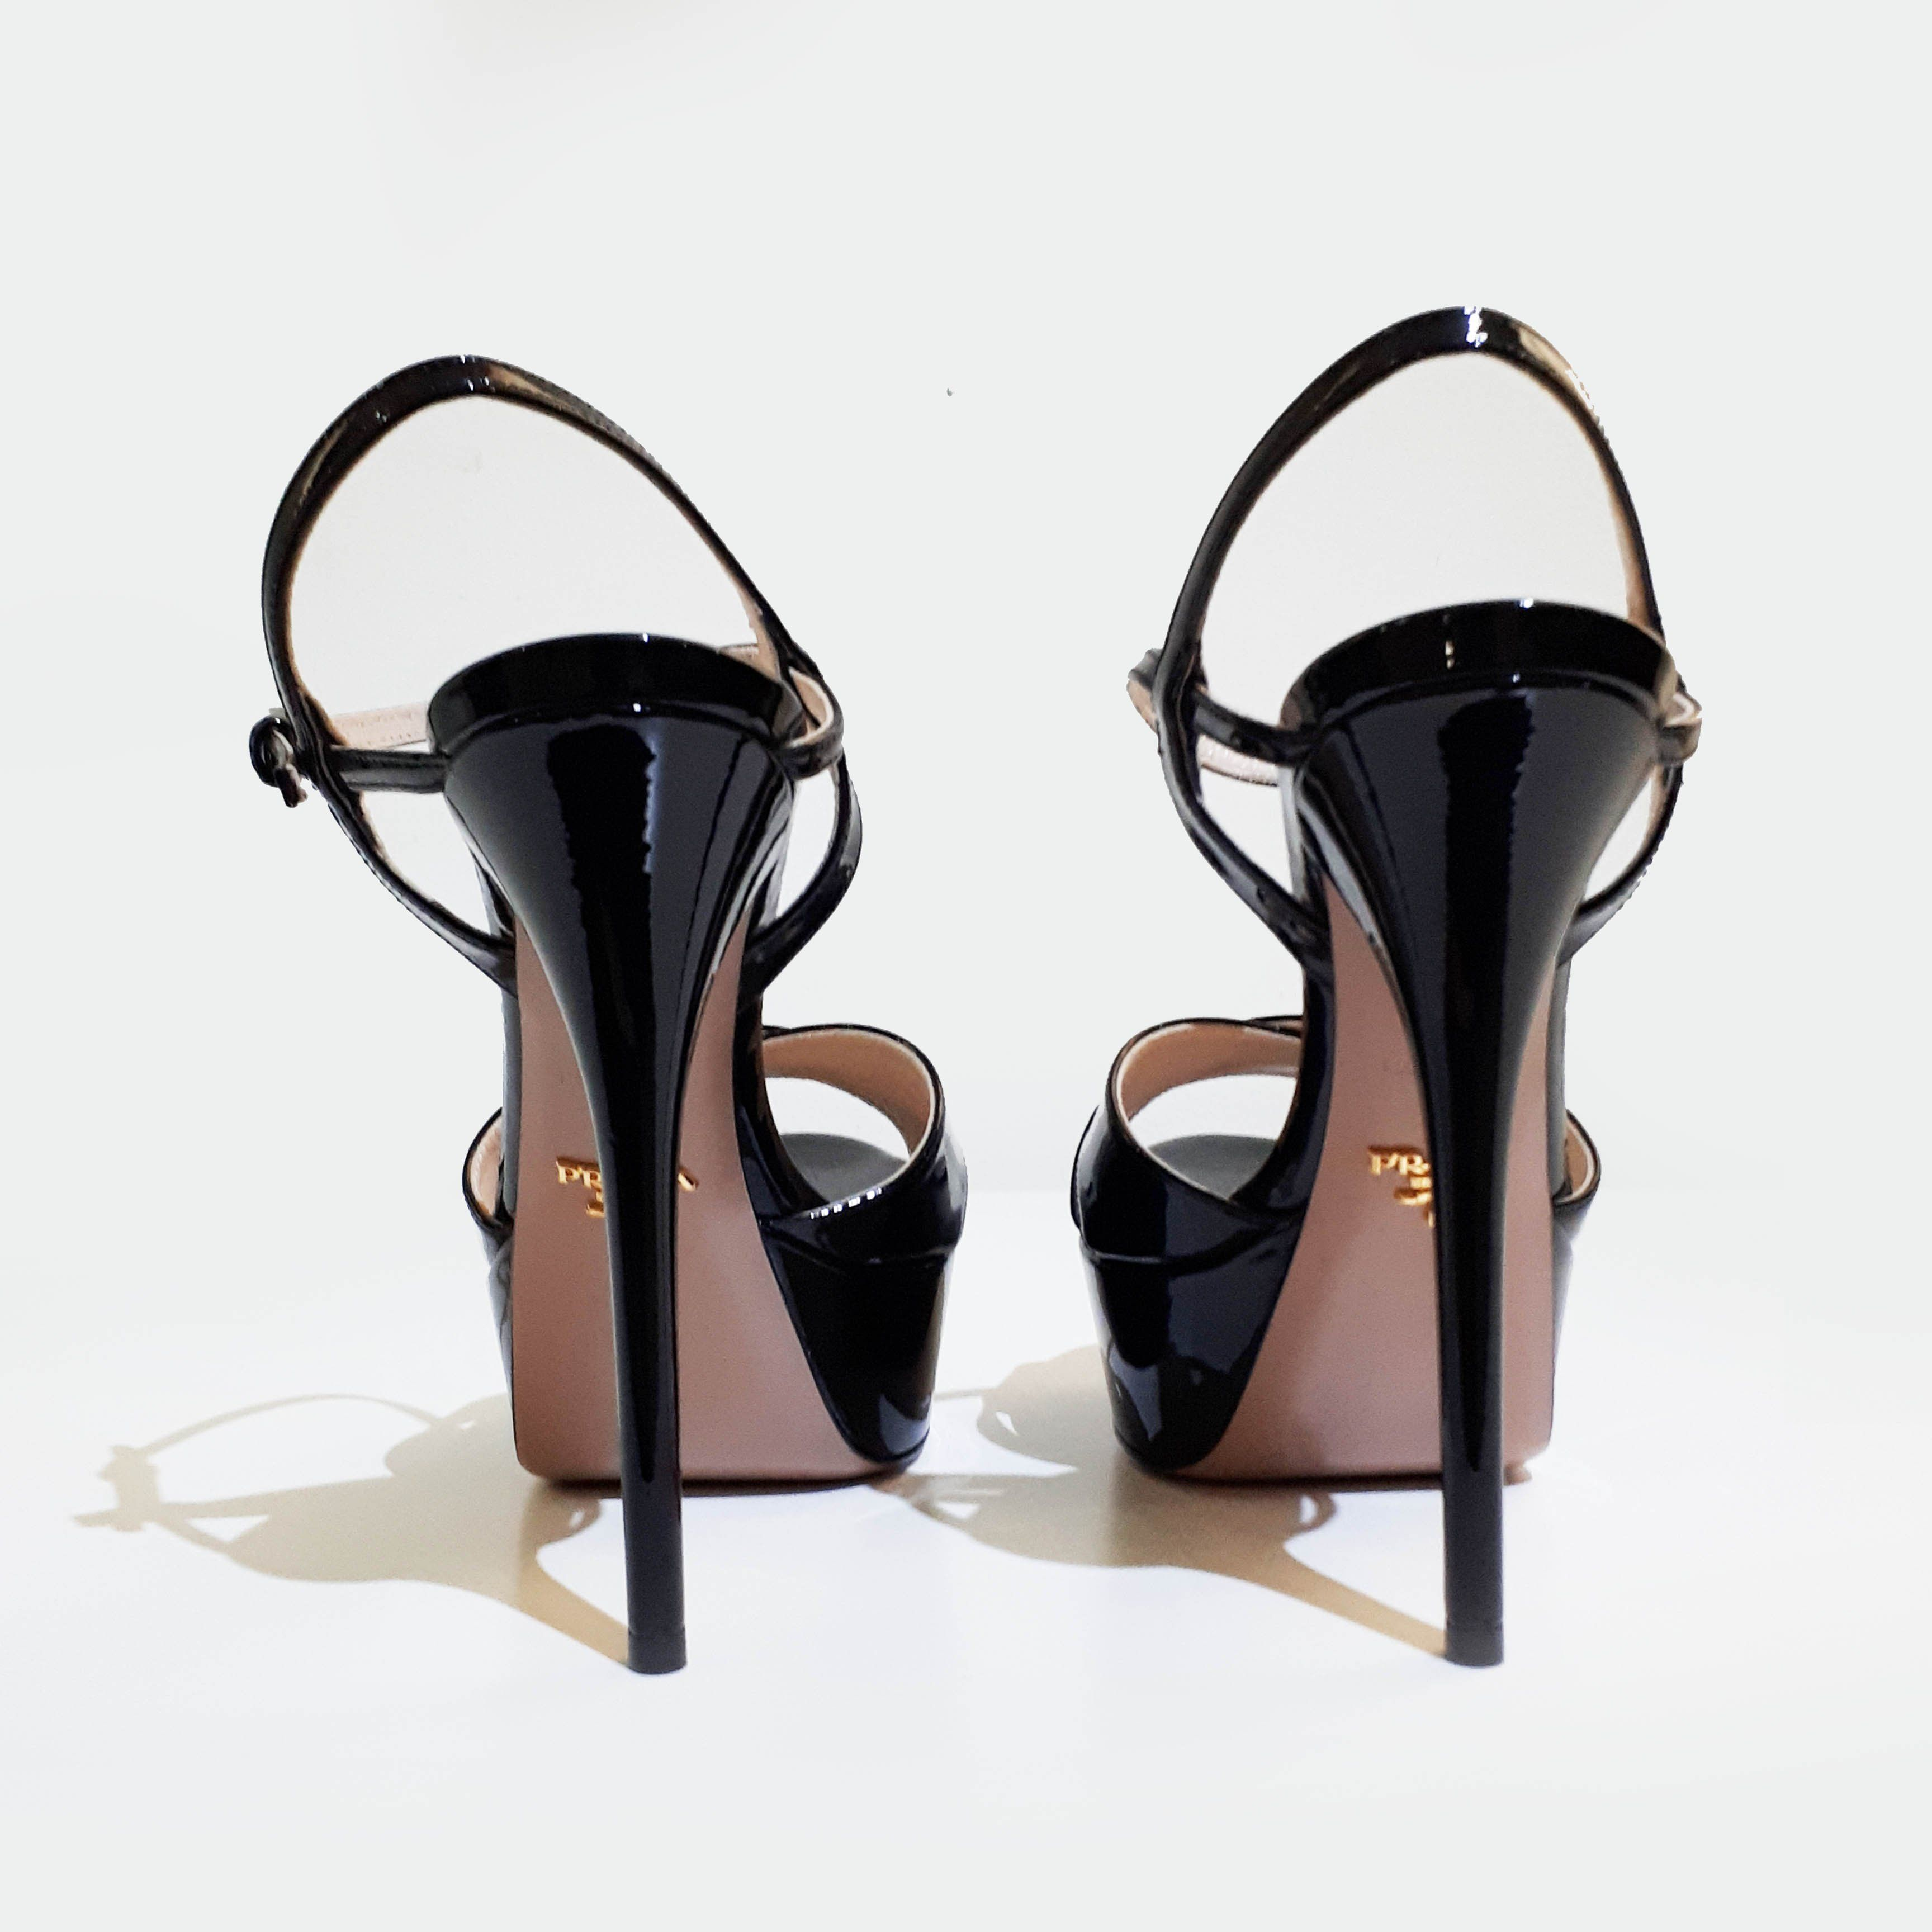 Prada Black Patent Leather Sandals Heels